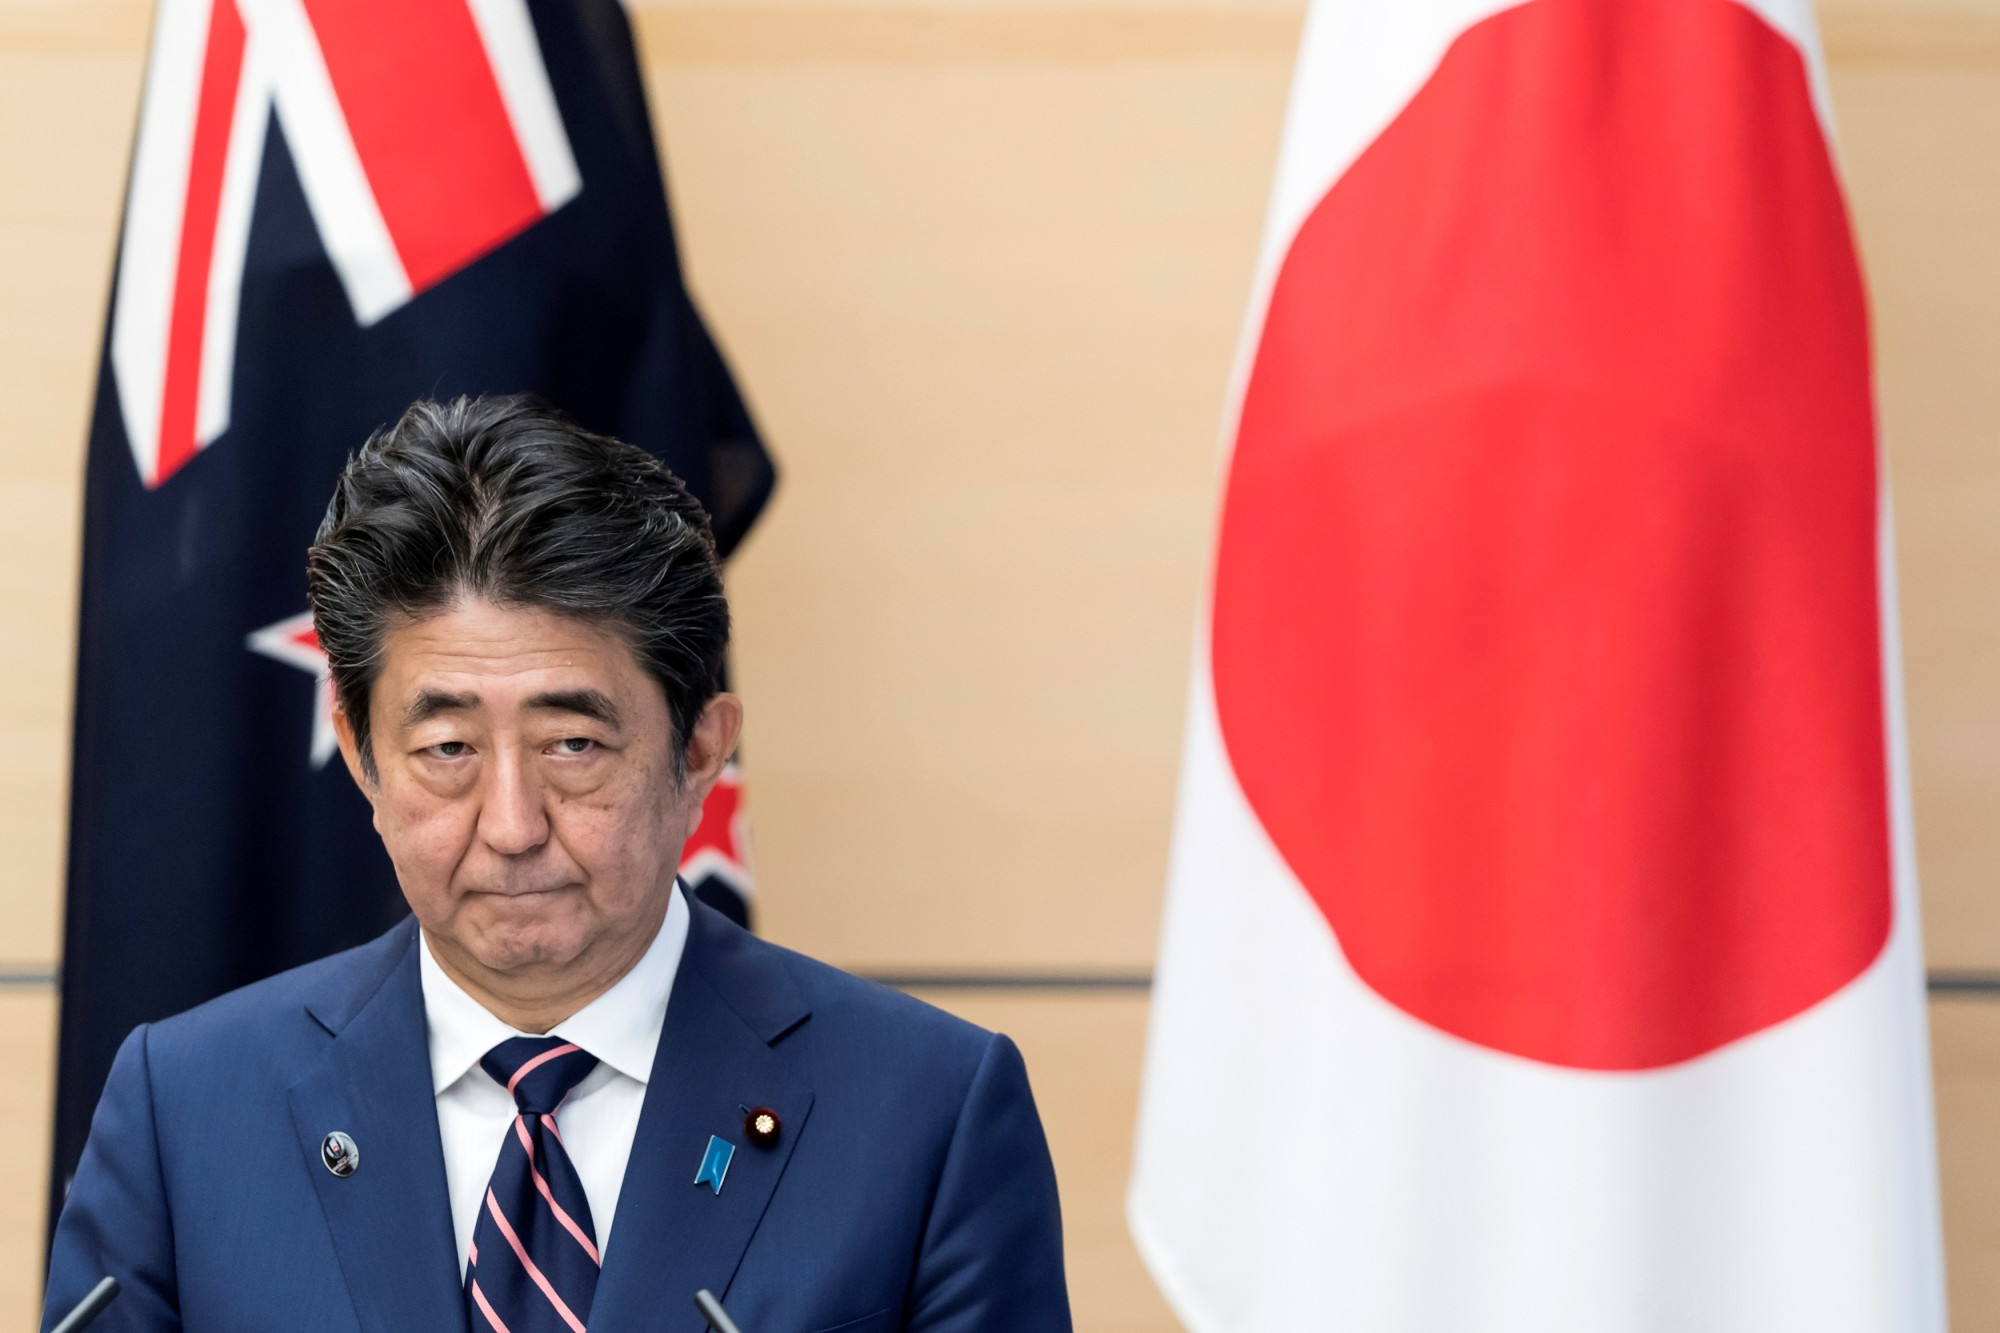 Prime Minister Shinzo Abe attends a joint news conference with New Zealand Prime Minister Jacinda Ardern (not pictured) on Thursday in Tokyo. | REUTERS